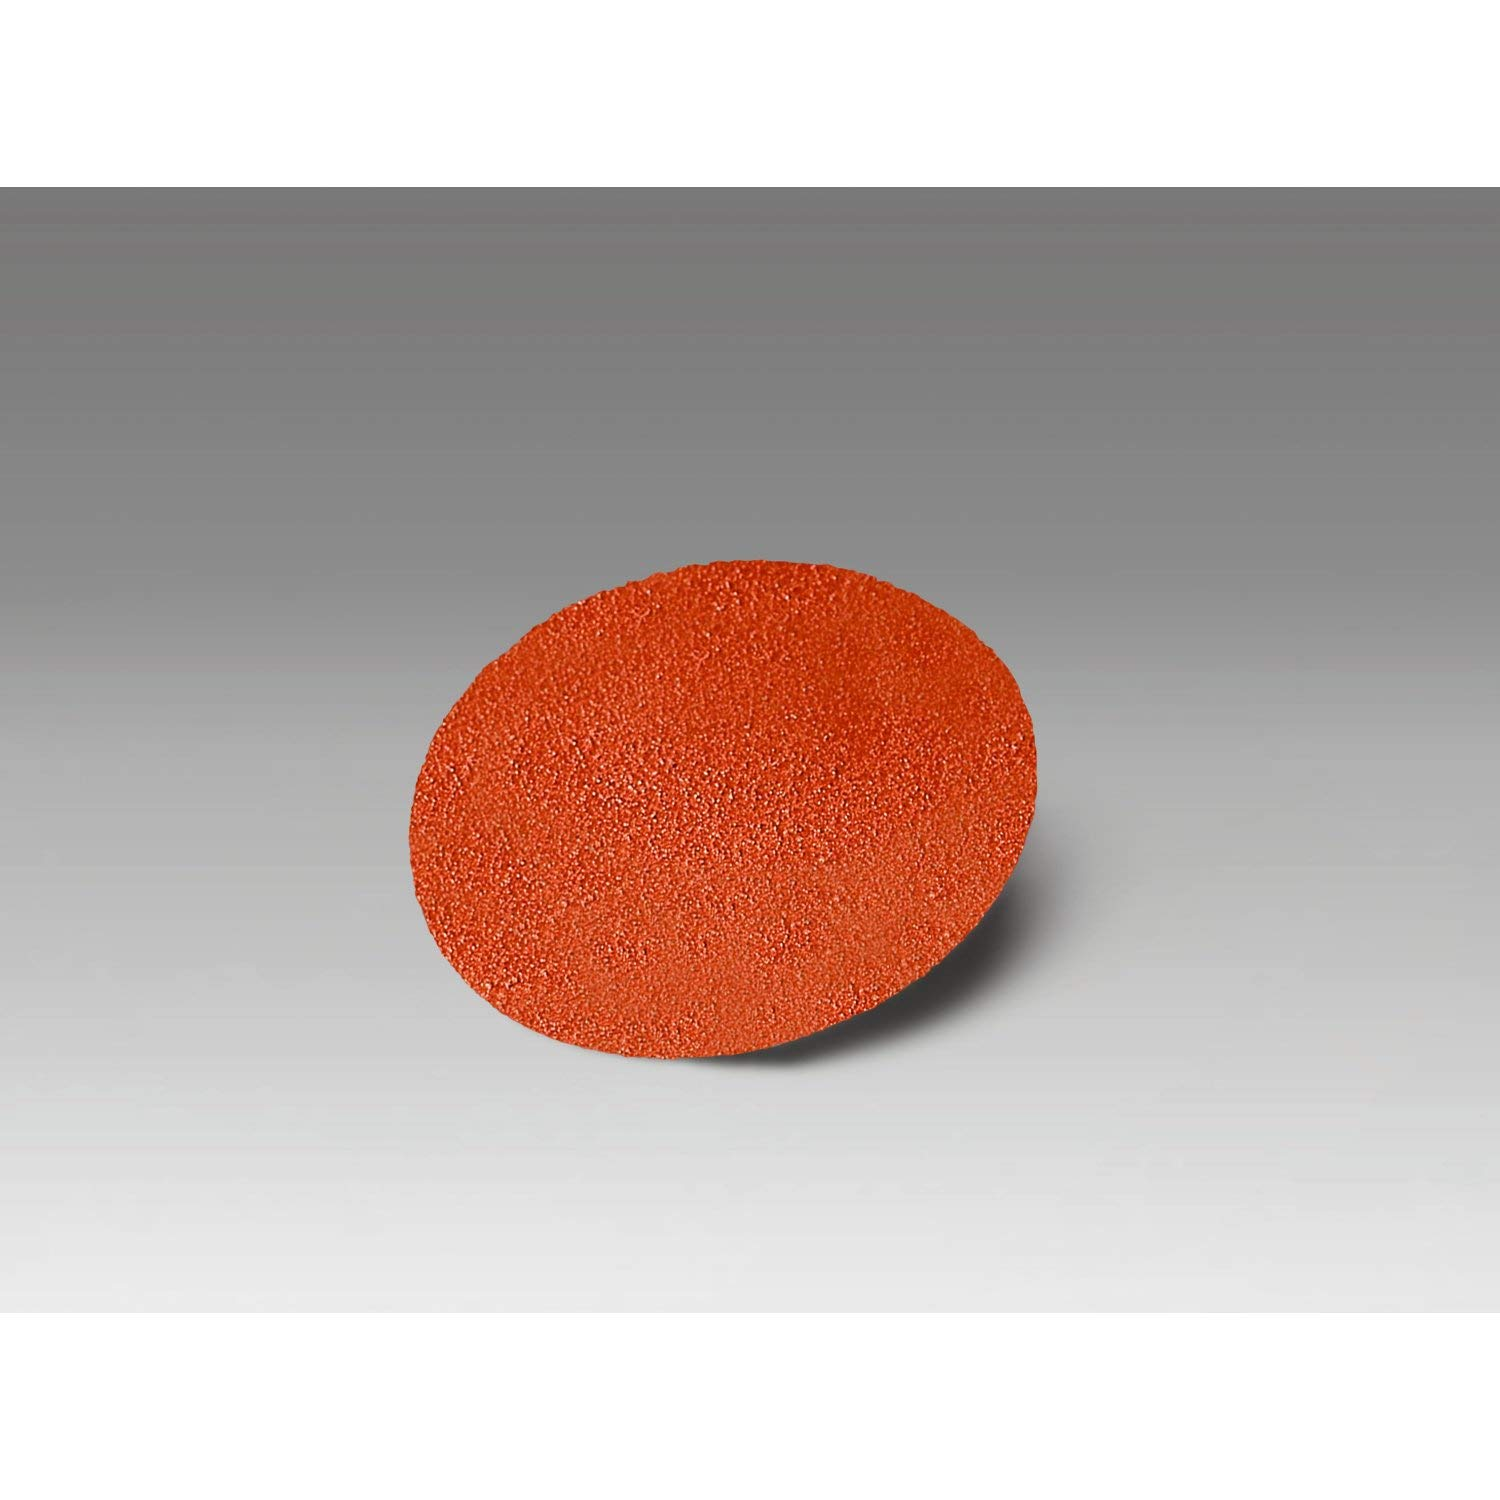 3M Roloc Disc Cheap sale 963G - 36 Sa Grinding Ceramic Grit Max 47% OFF For